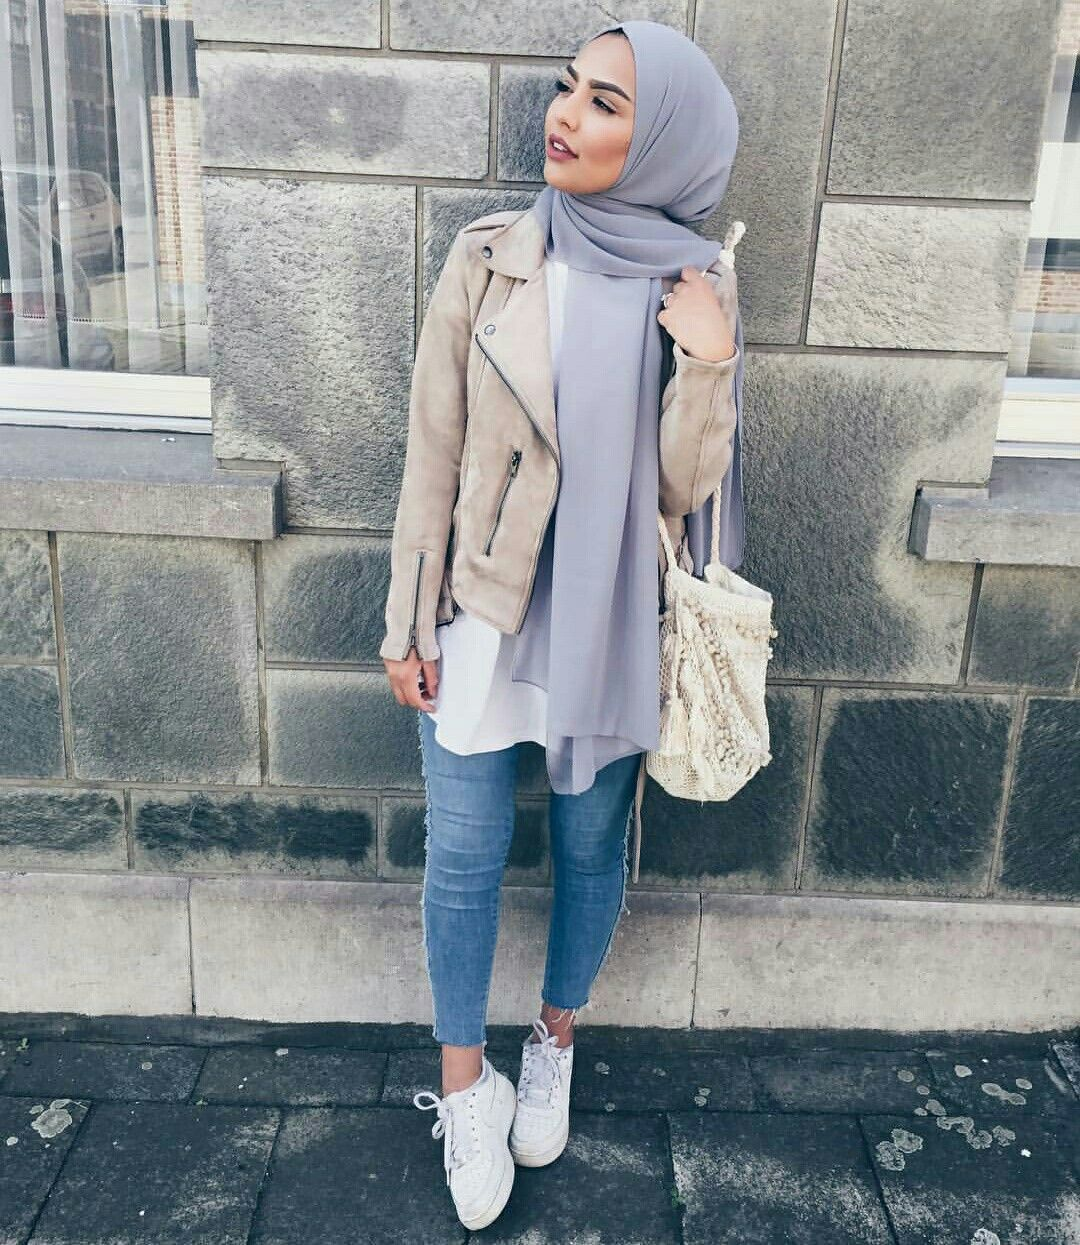 Hijab Chic Pinterest Hijab Outfit Middle Eastern Fashion And Muslim